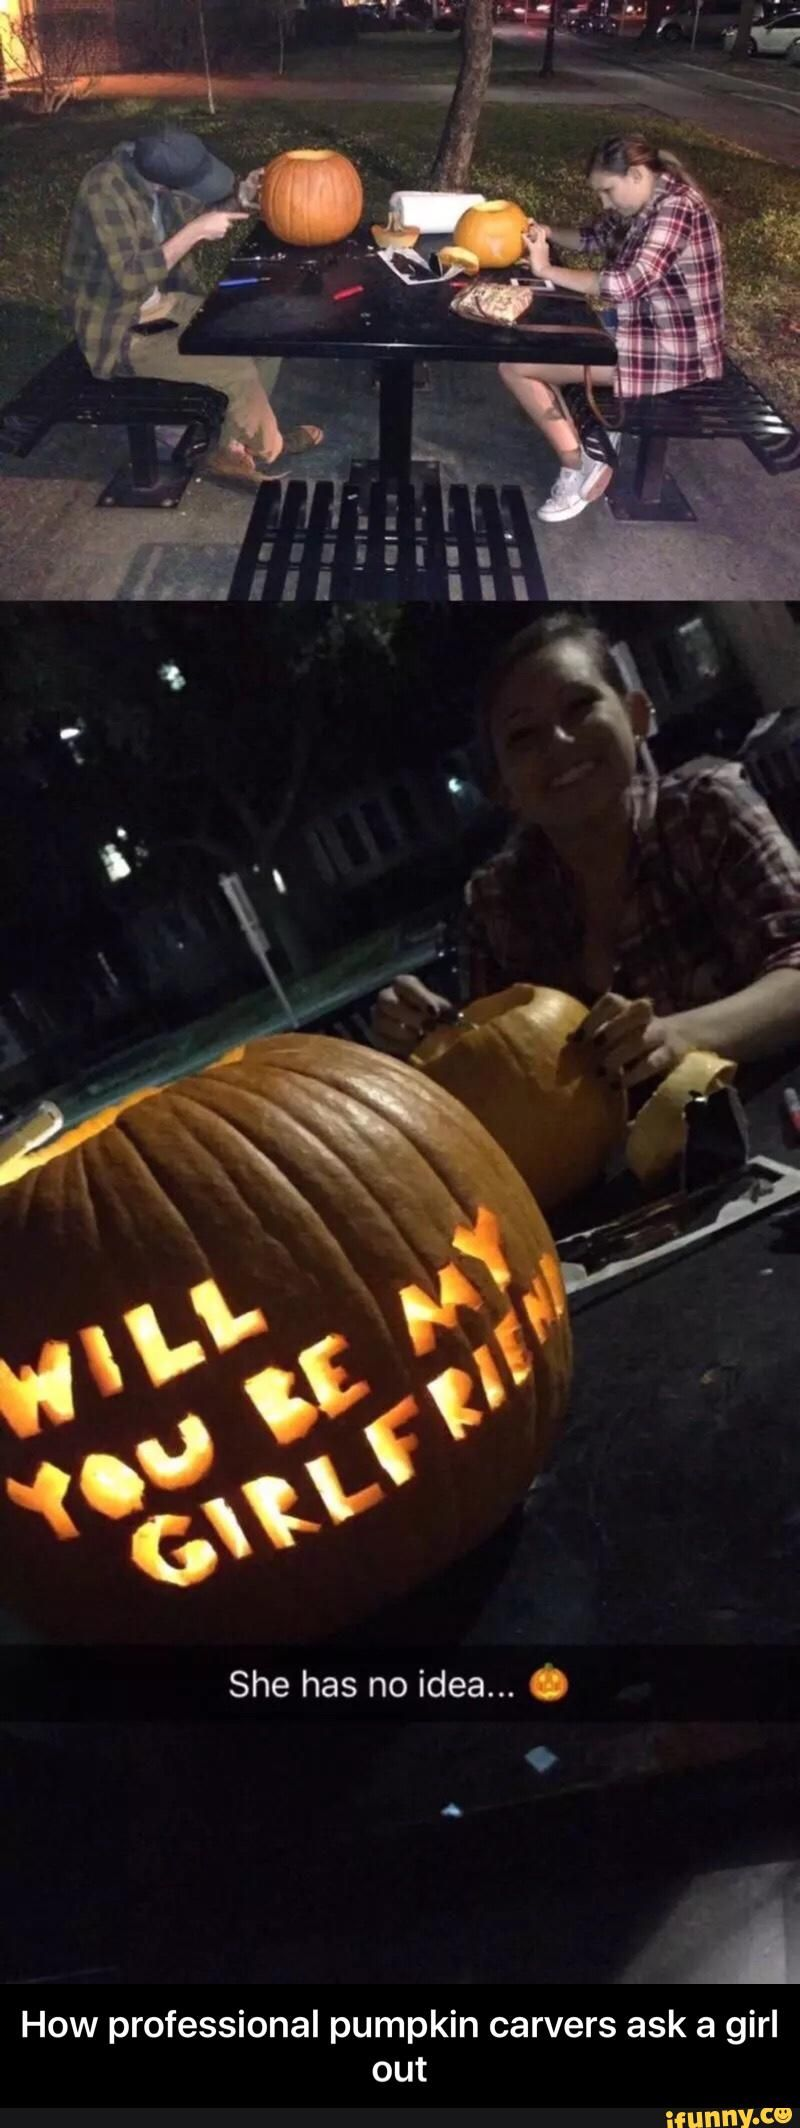 How To Ask A Girl Out With Pumpkins